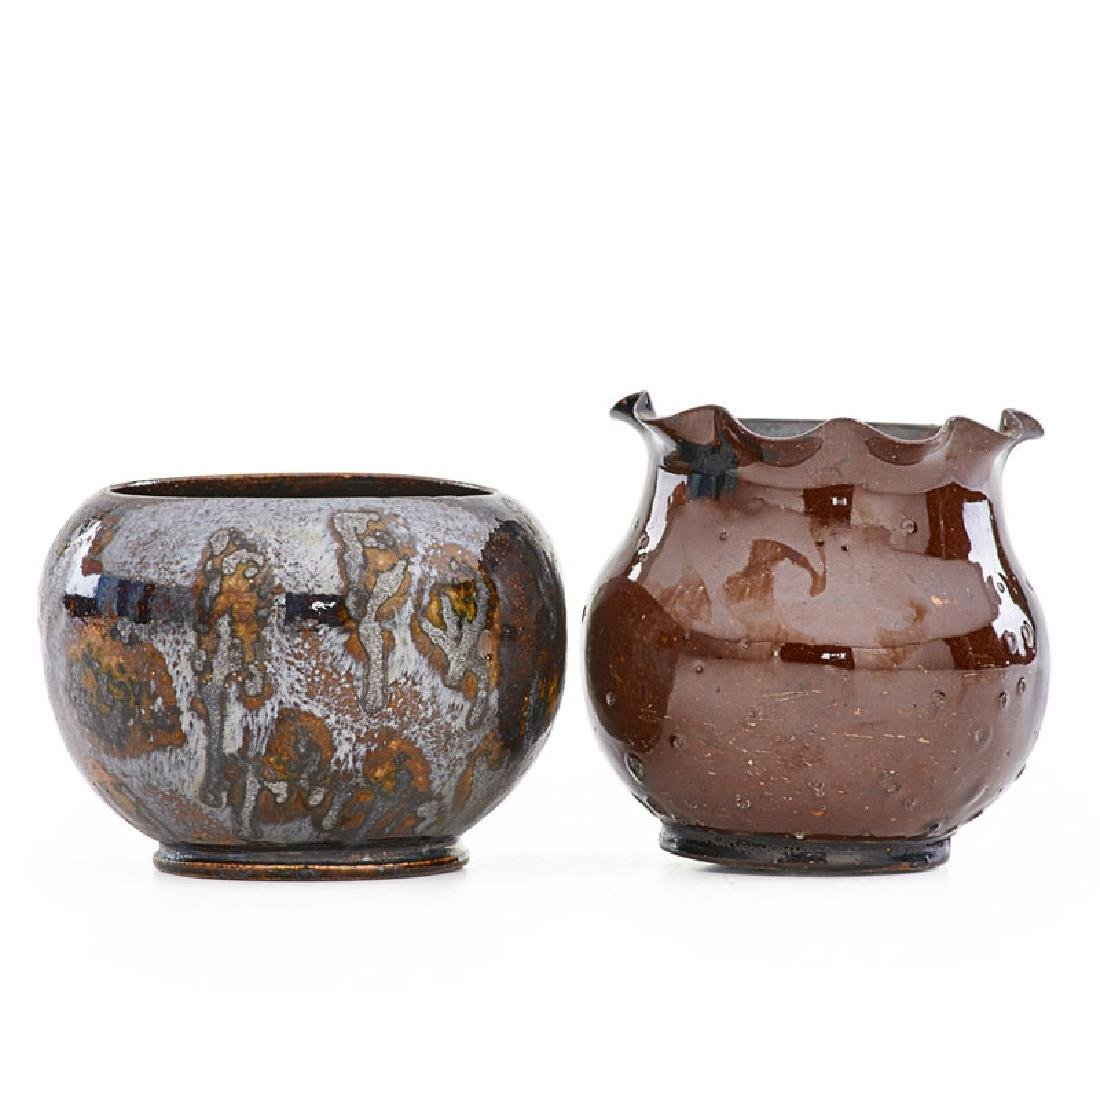 GEORGE OHR Two small vases